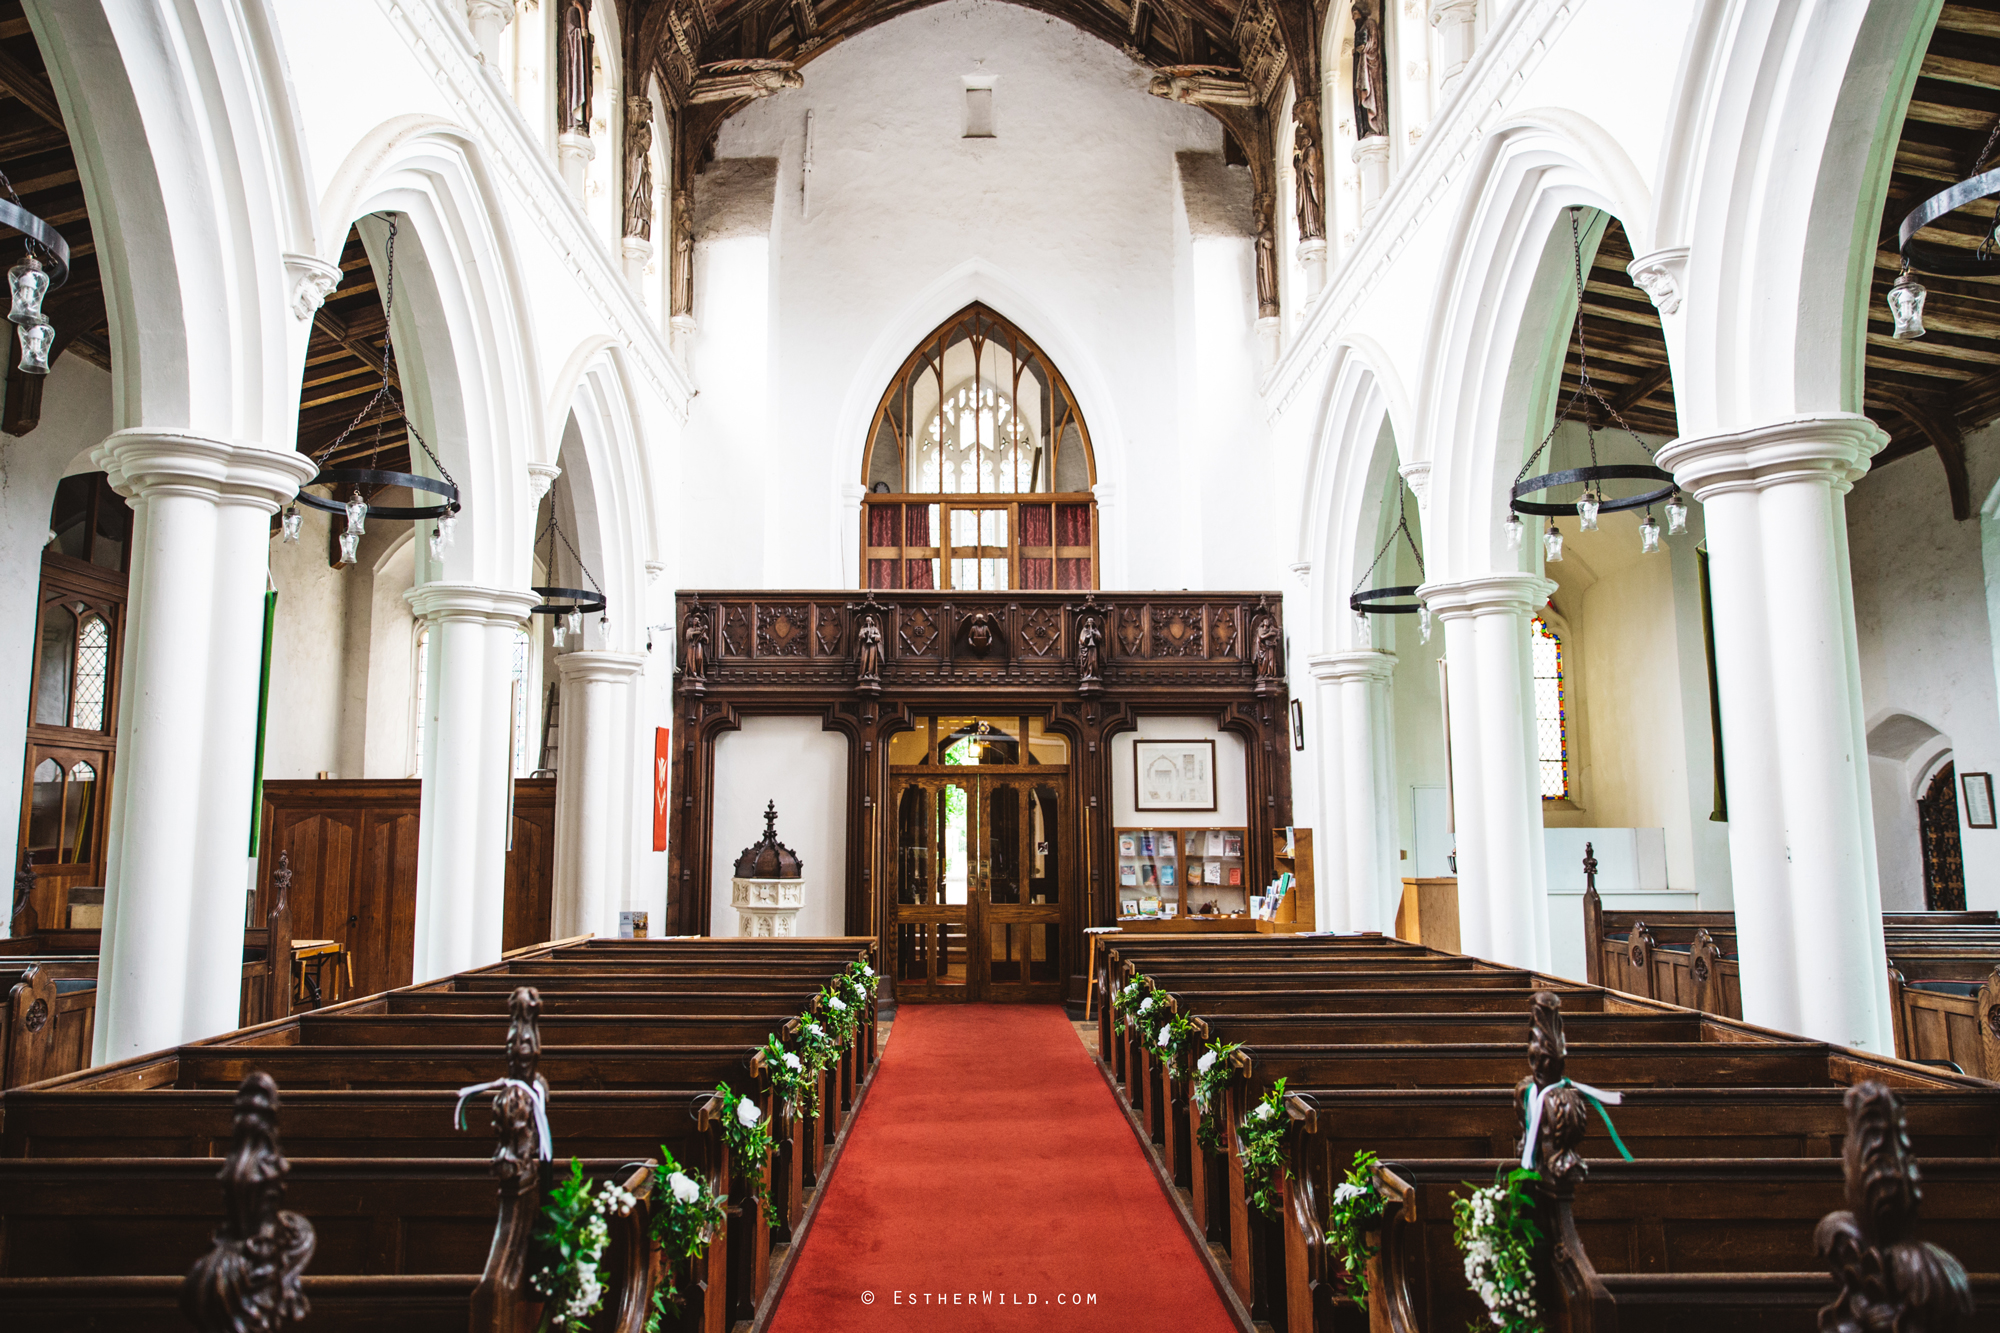 Cockley_Cley_All_Saints_Church_Necton_Norfolk_Esther_Wild_Photographer_IMG_0029.jpg